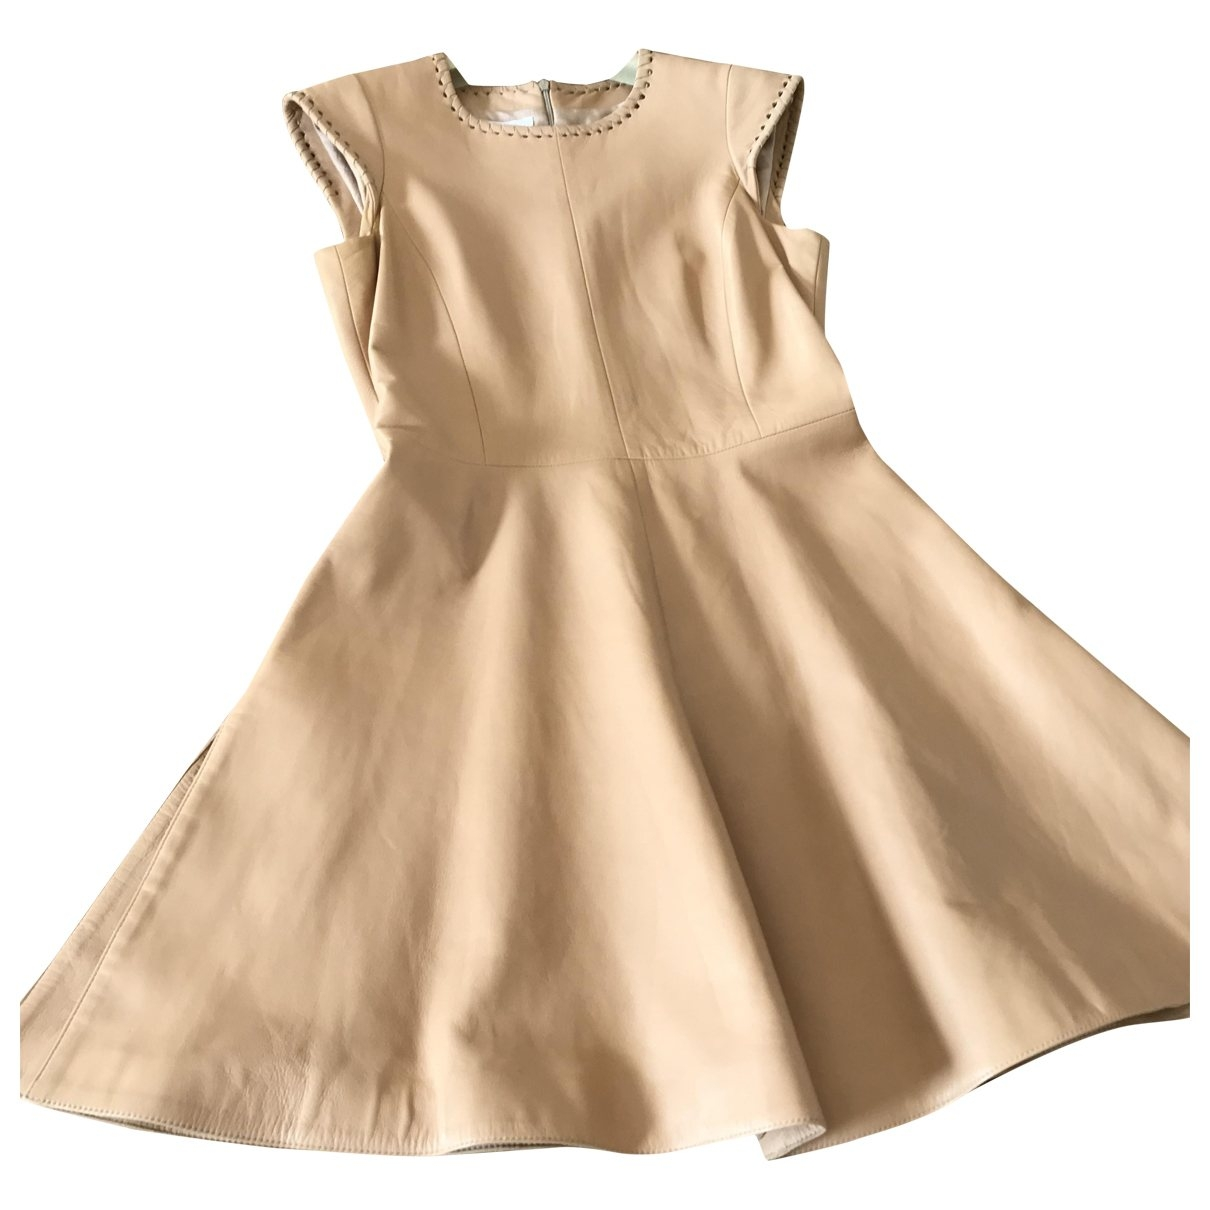 Chloé \N Beige Leather dress for Women 36 FR